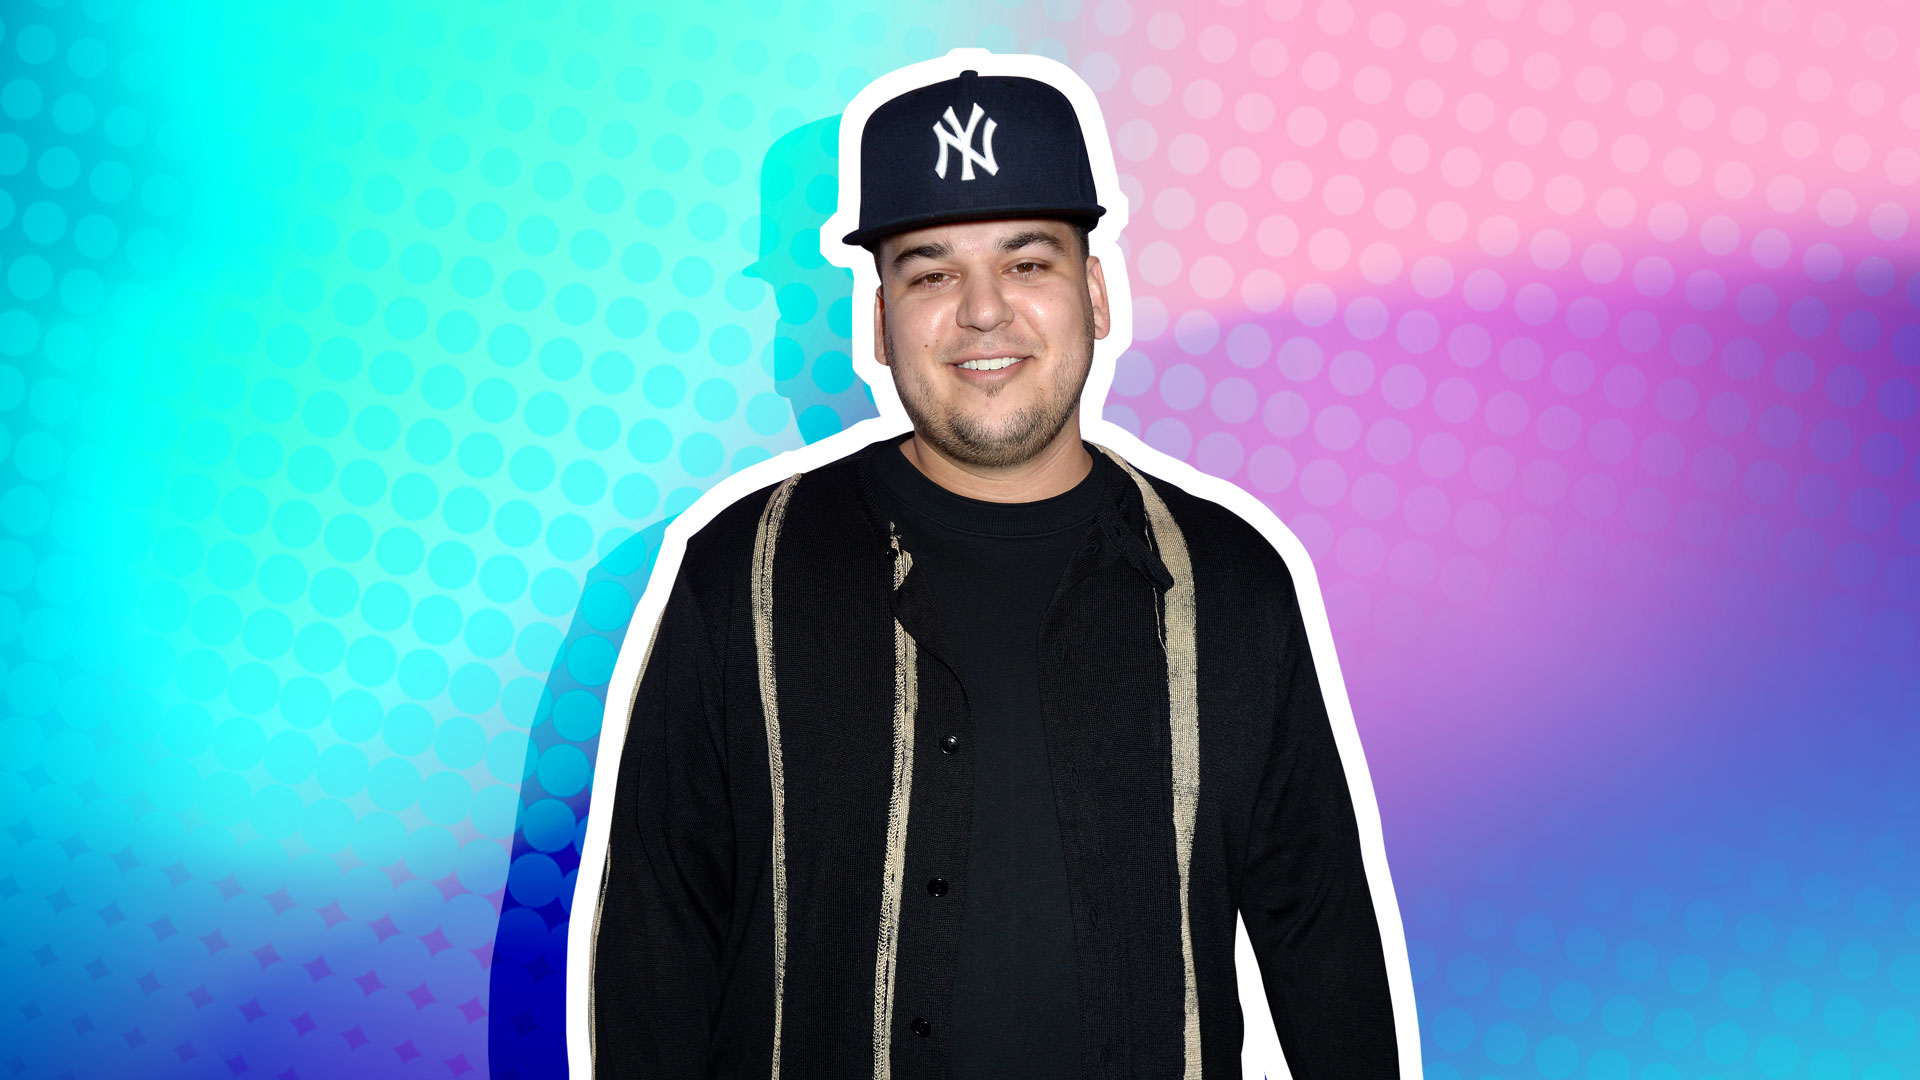 What Rob Kardashian Has Been Up to Since His Breakup with Blac Chyna